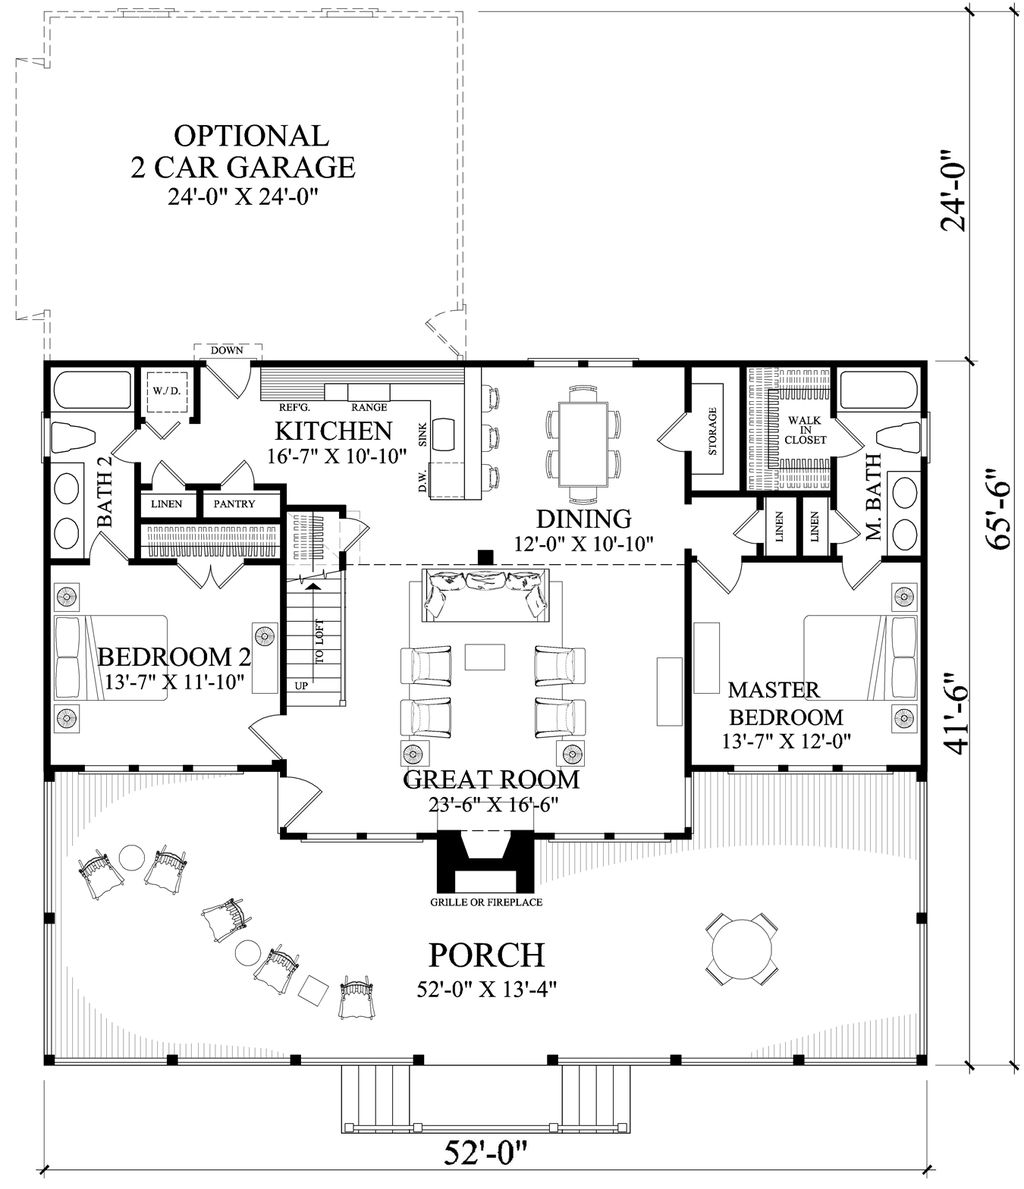 cabin style house plan 2 beds 2 baths 1665 sq ft plan 137 295 cabin style house plan 2 beds 2 baths 1665 sq ft plan 137